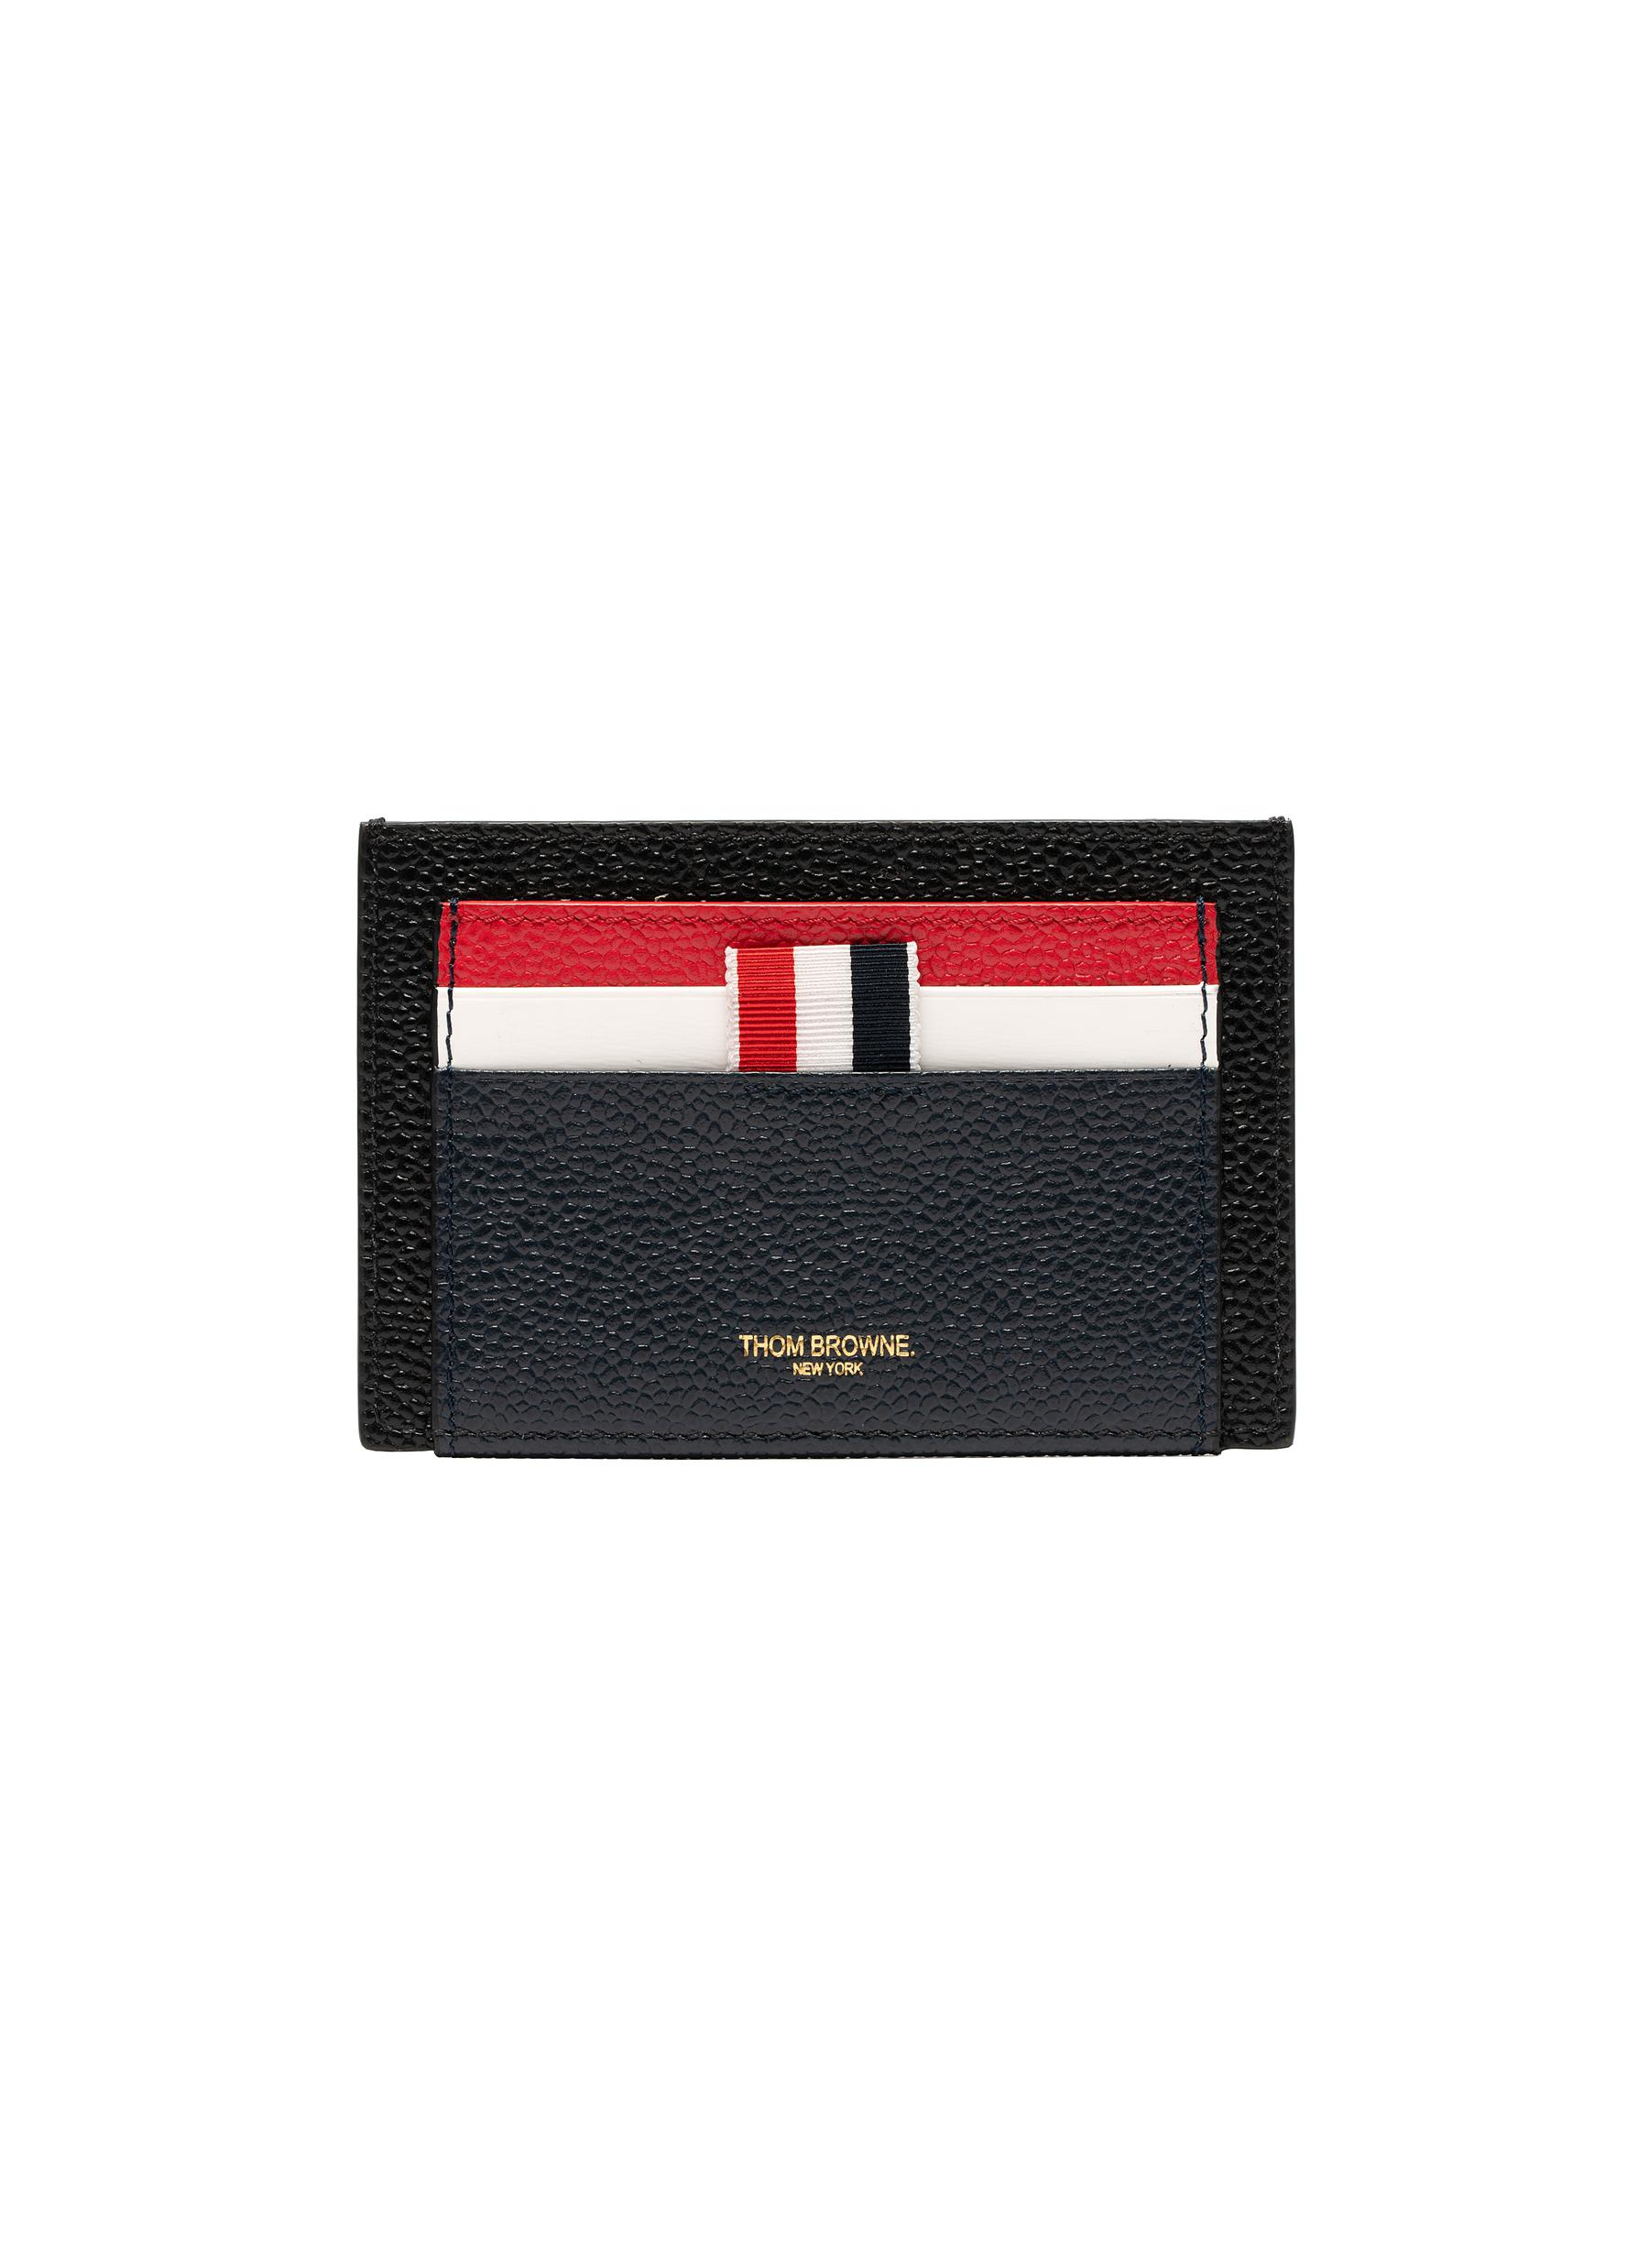 9aaa02695c Main View - Click To Enlarge - THOM BROWNE - Colourblock pebble grain  leather card holder